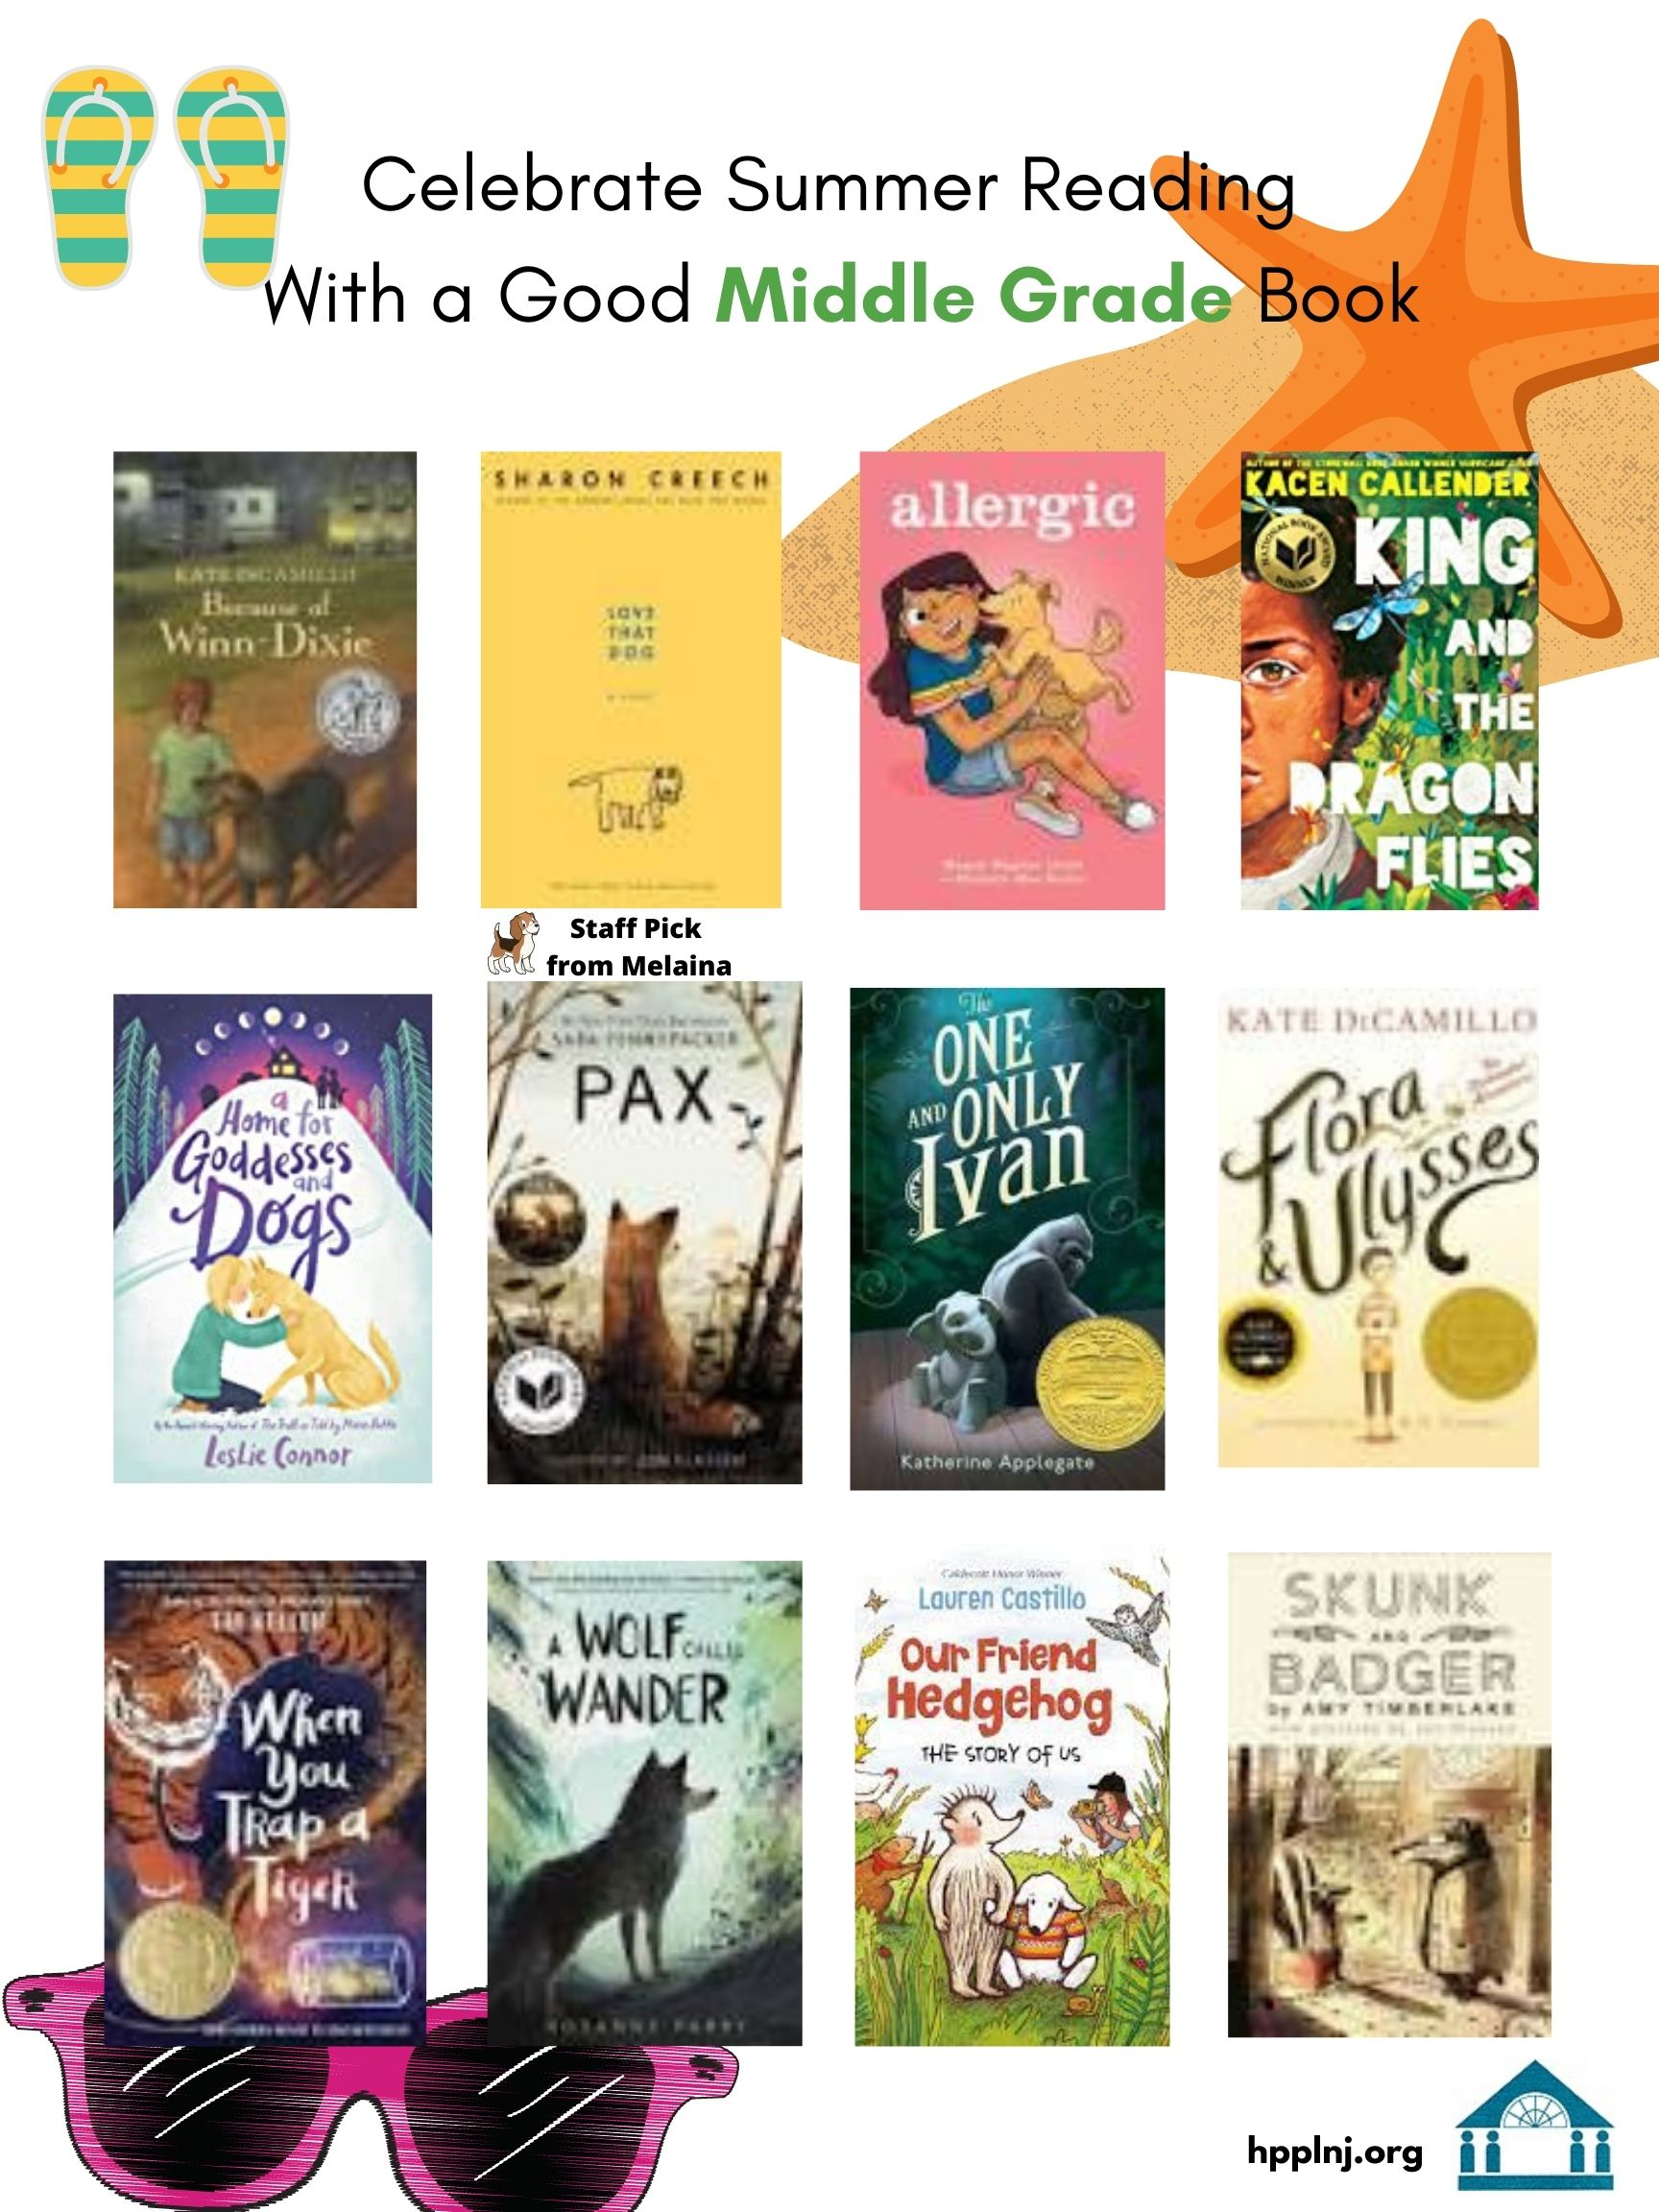 Celebrate Summer Reading with a Good Middle grade Book: Because of Winn Dixie, Love That Dog, Allergic, King and the Dragonflies, A Home for Goddesses and Dogs, Pax, The One and Only Ivan, Flora & Ulysses, When you Trap a Tiger, A Wolf Called Wander, Our Friend Hedgehog- The Story of Us, Skunk and Badger